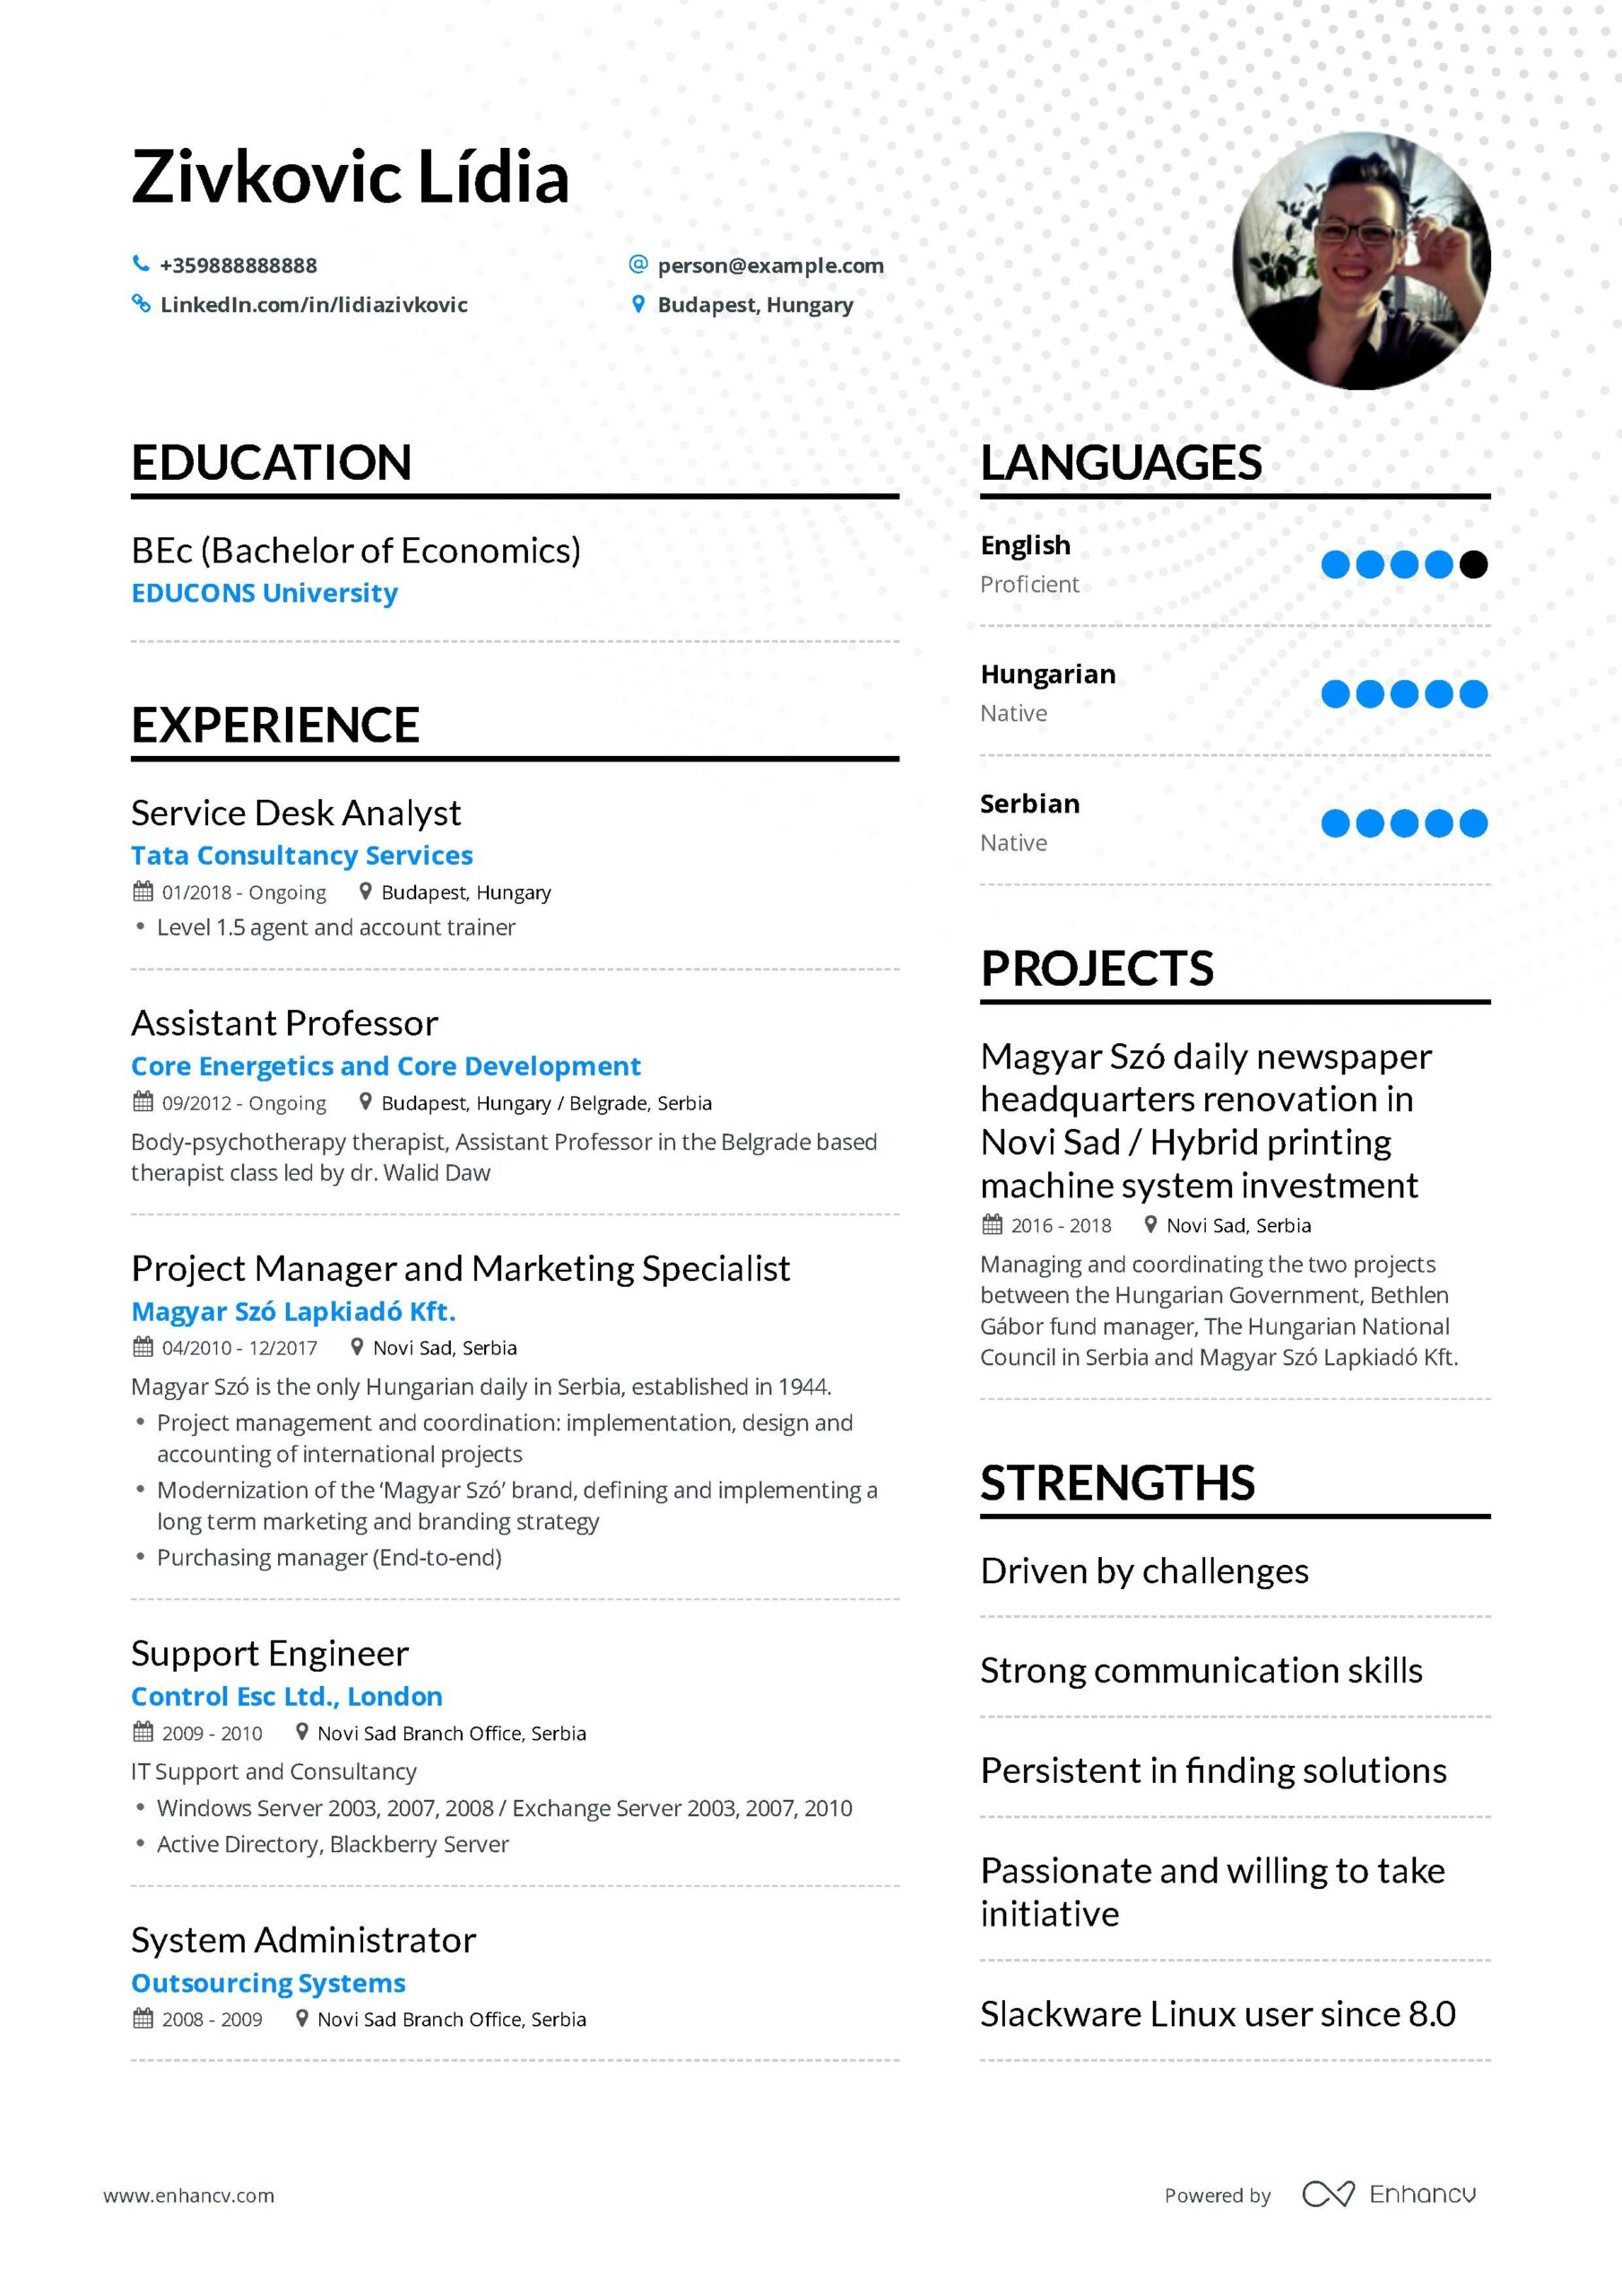 information technology it resume examples ideas programming projects for reddit appealing Resume Information Technology Resume Examples 2020